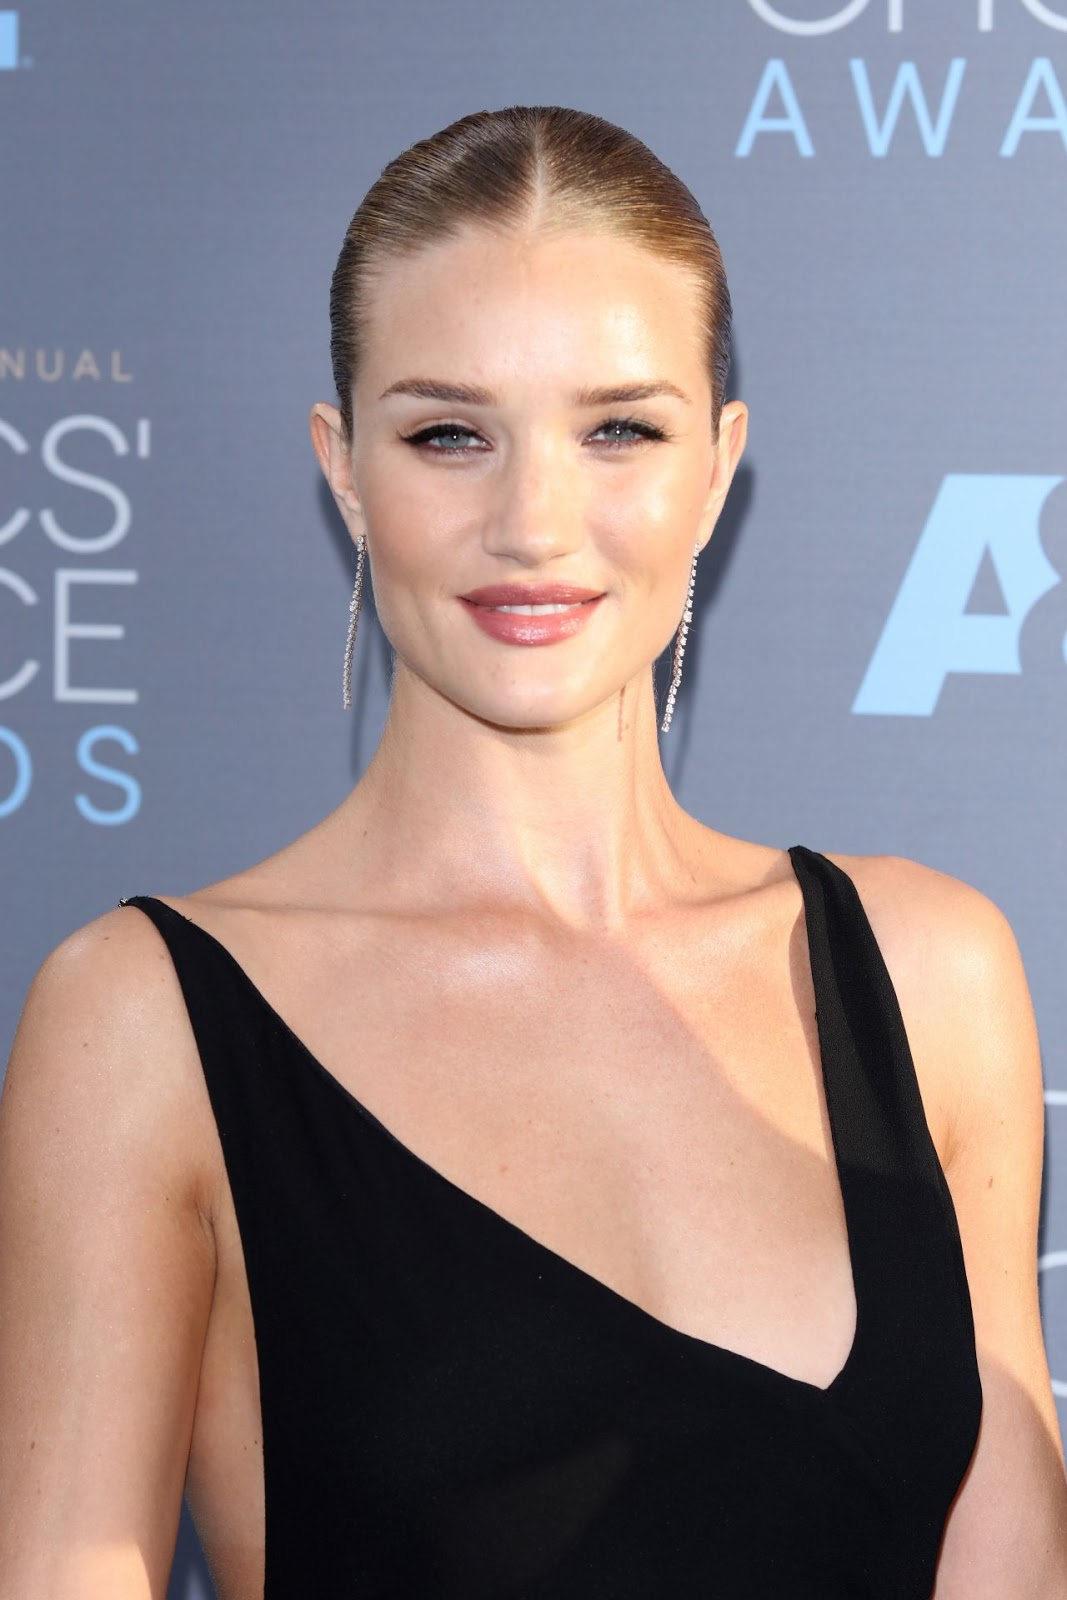 Jason Statham & Rosie Huntington at 2016 Critics Choice Awards